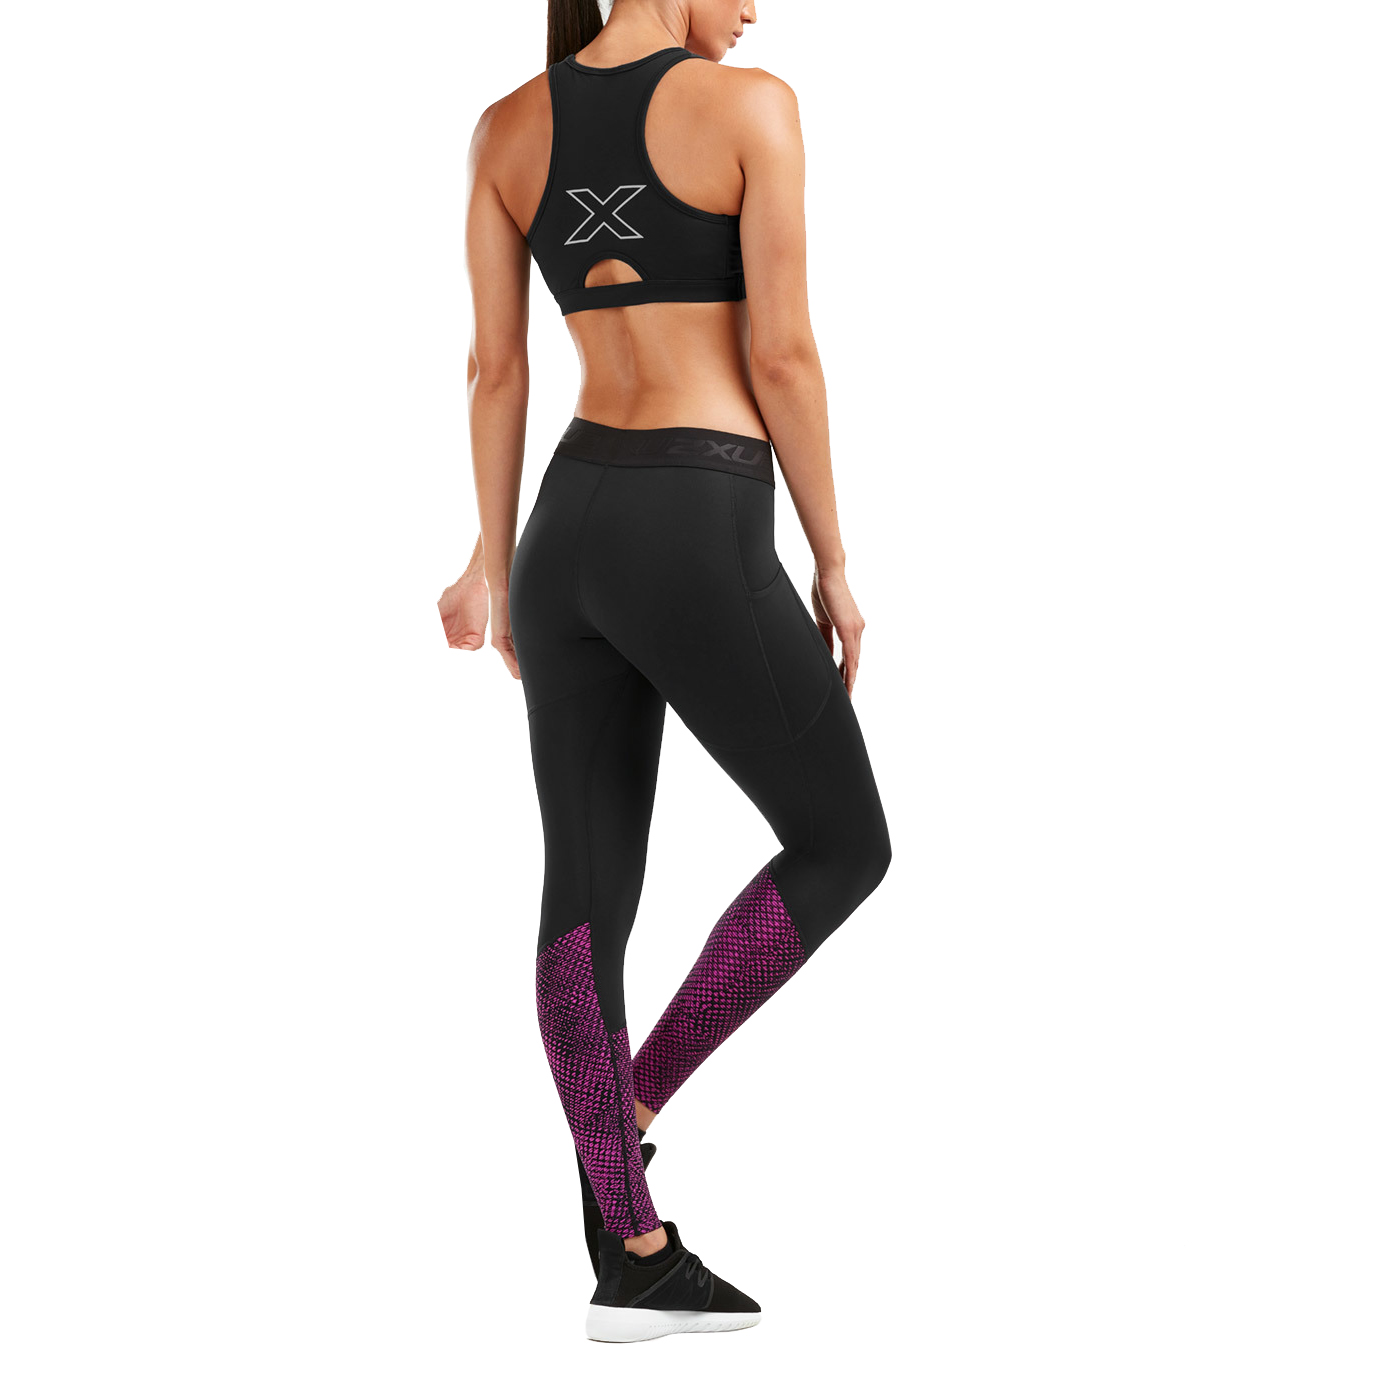 4751fca92d 2XU Women's Accelerate Compression Tights with Storage | Womens ...